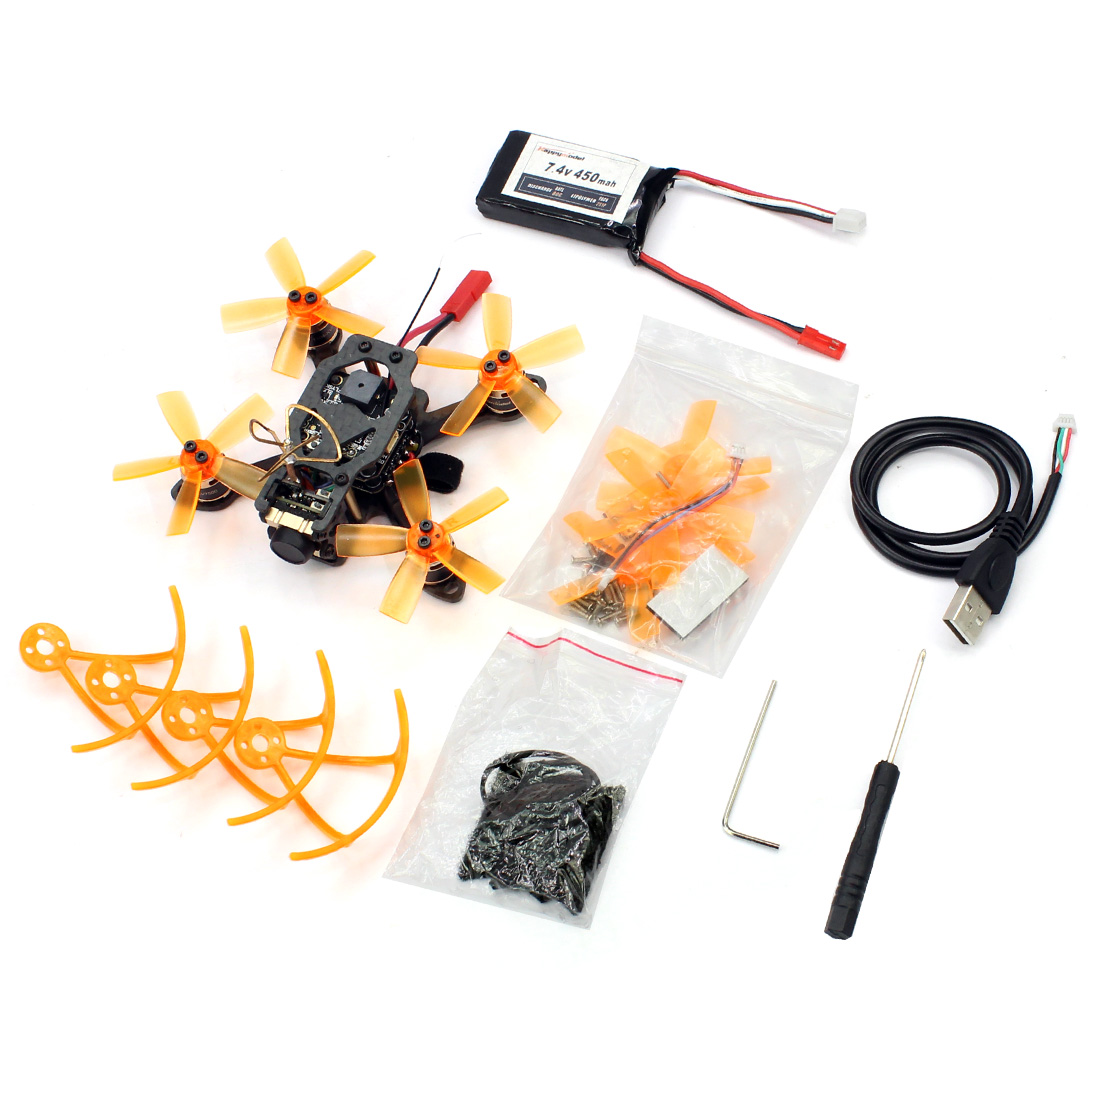 Toad 90 Micro Brushless FPV Racing Drone F3 DSHOT Flight Controller wi Frsky/Flysky/DSM/2/X Receiver with Camera Quadcopter BNF toad 90 micro brushless fpv racing drone f3 dshot flight controller wi frsky flysky dsm 2 x receiver with camera quadcopter bnf